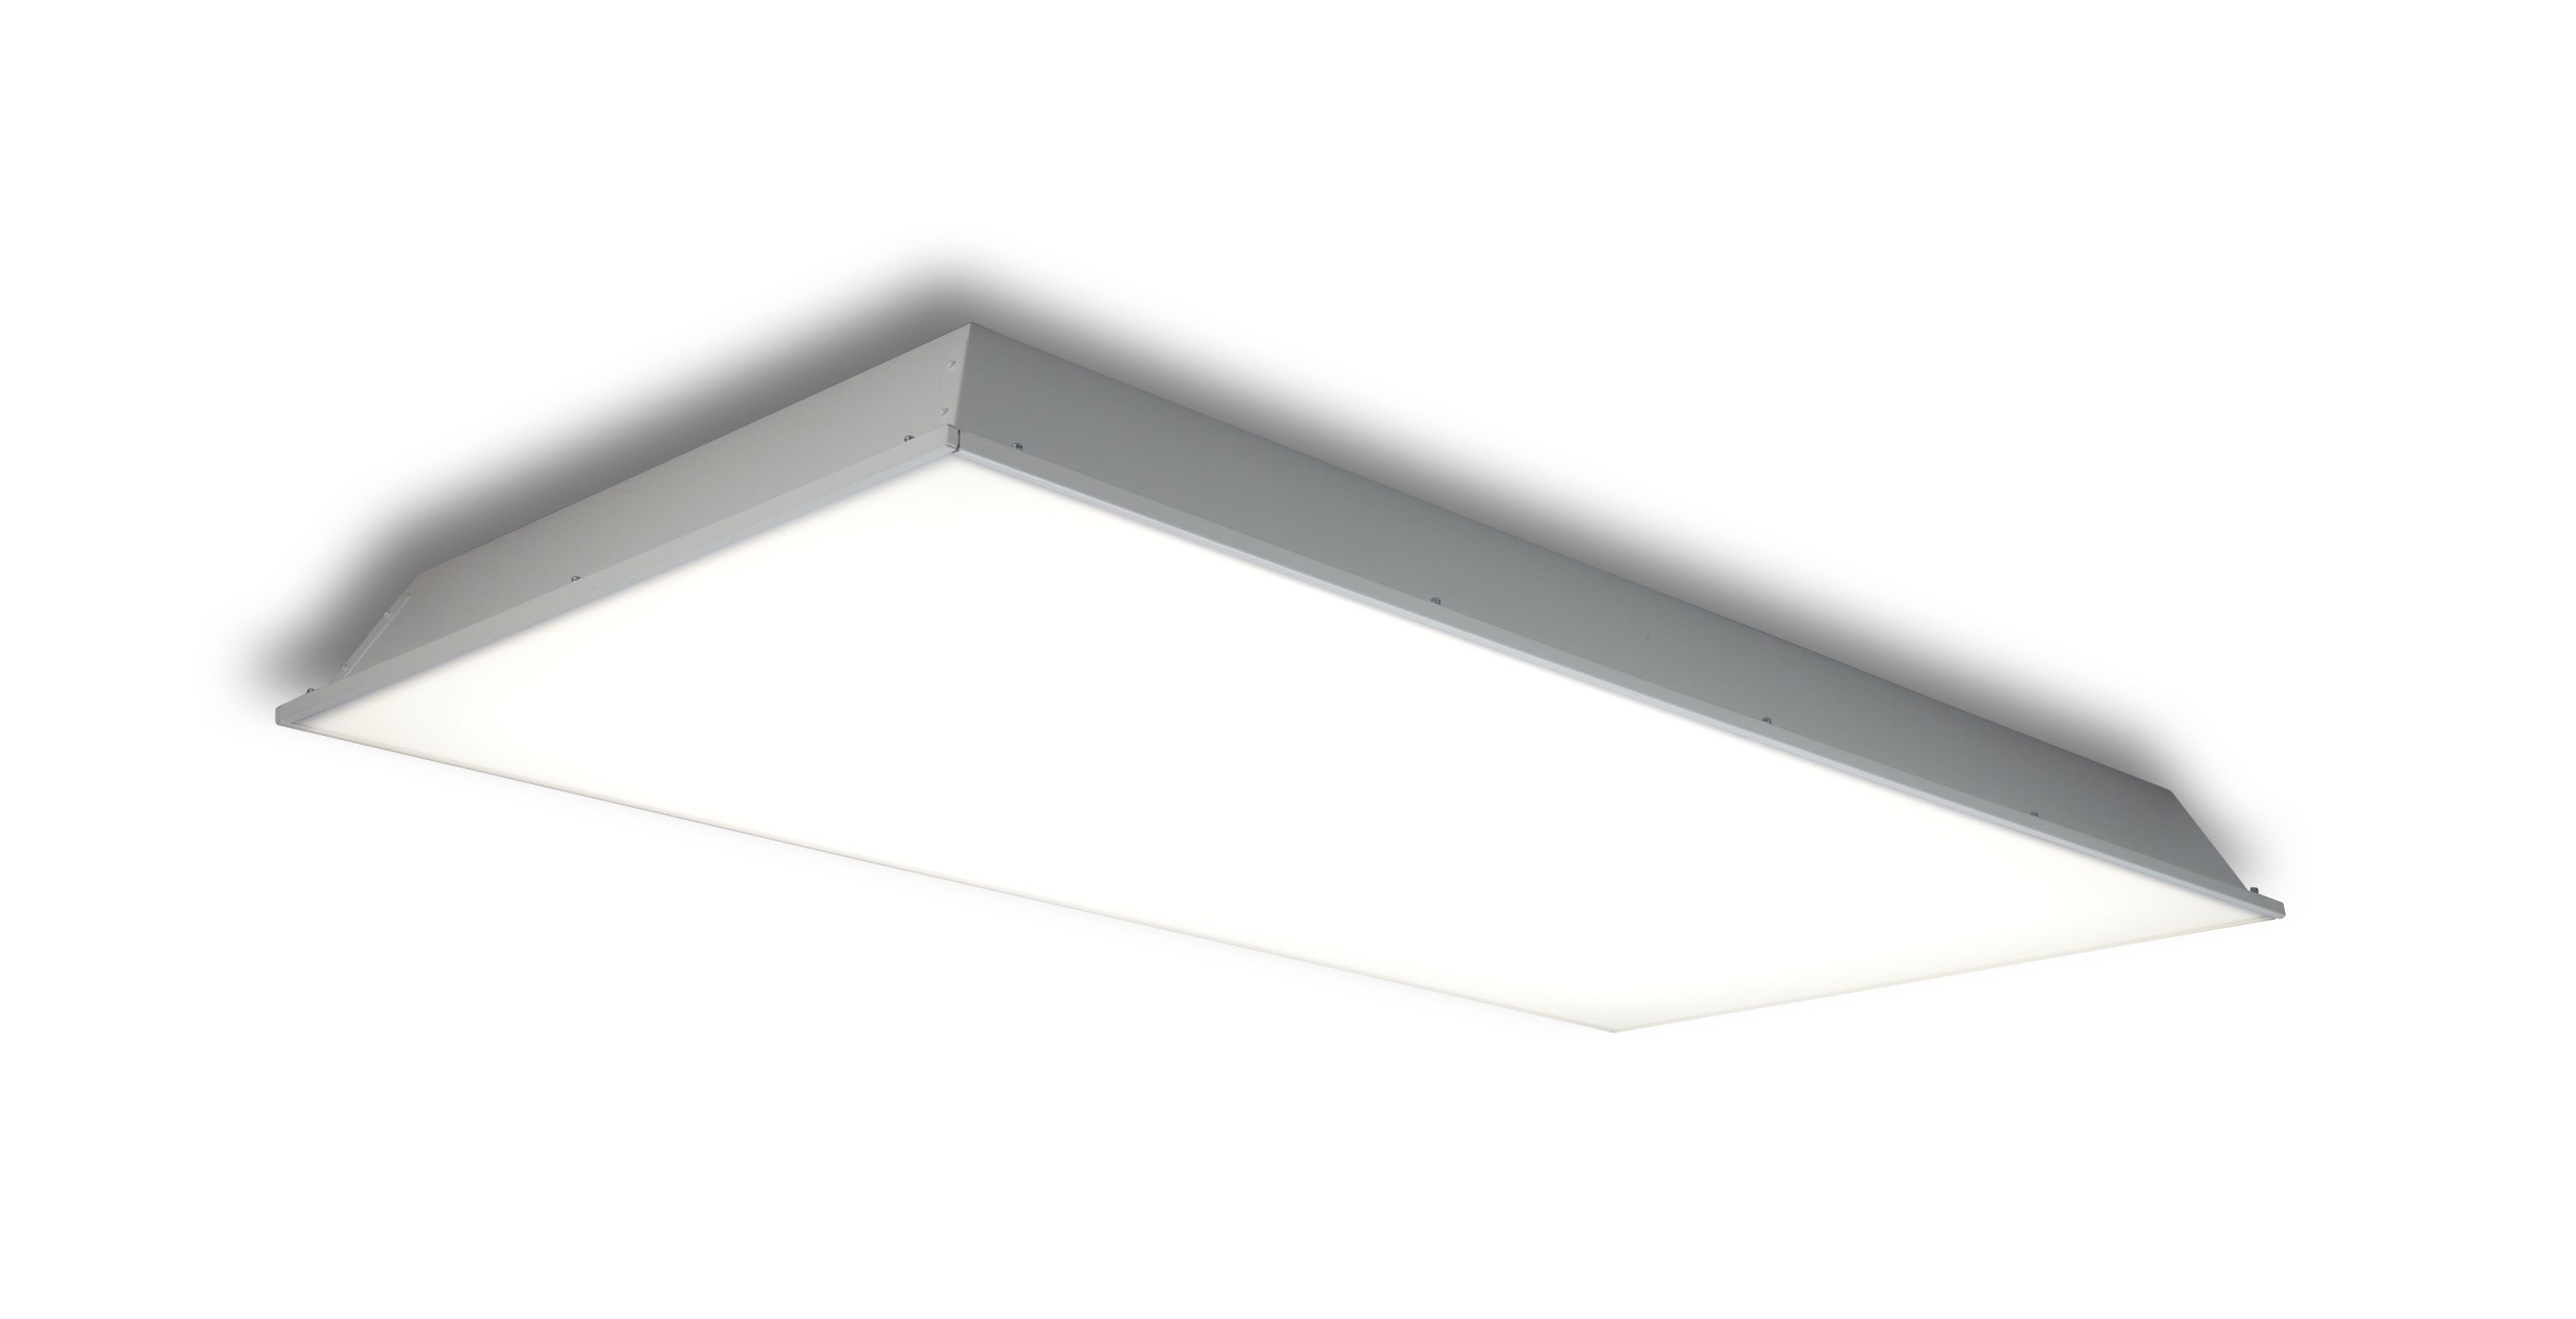 Ge S Lumination Bt Series Led Lighting Fixture Refreshes